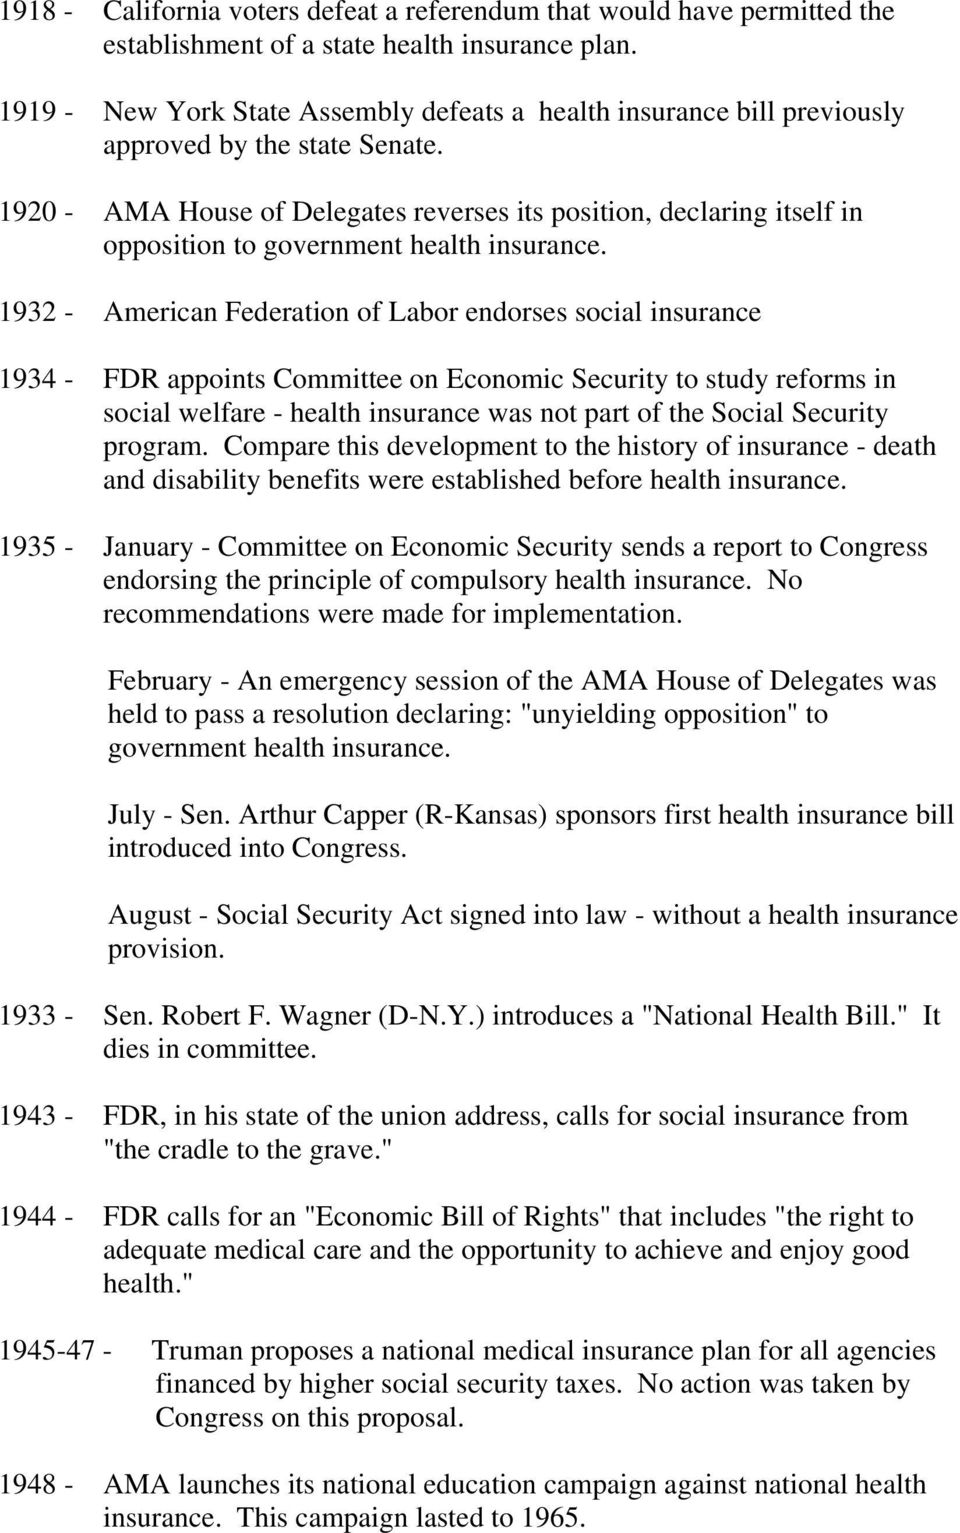 1920 - AMA House of Delegates reverses its position, declaring itself in opposition to government health insurance.